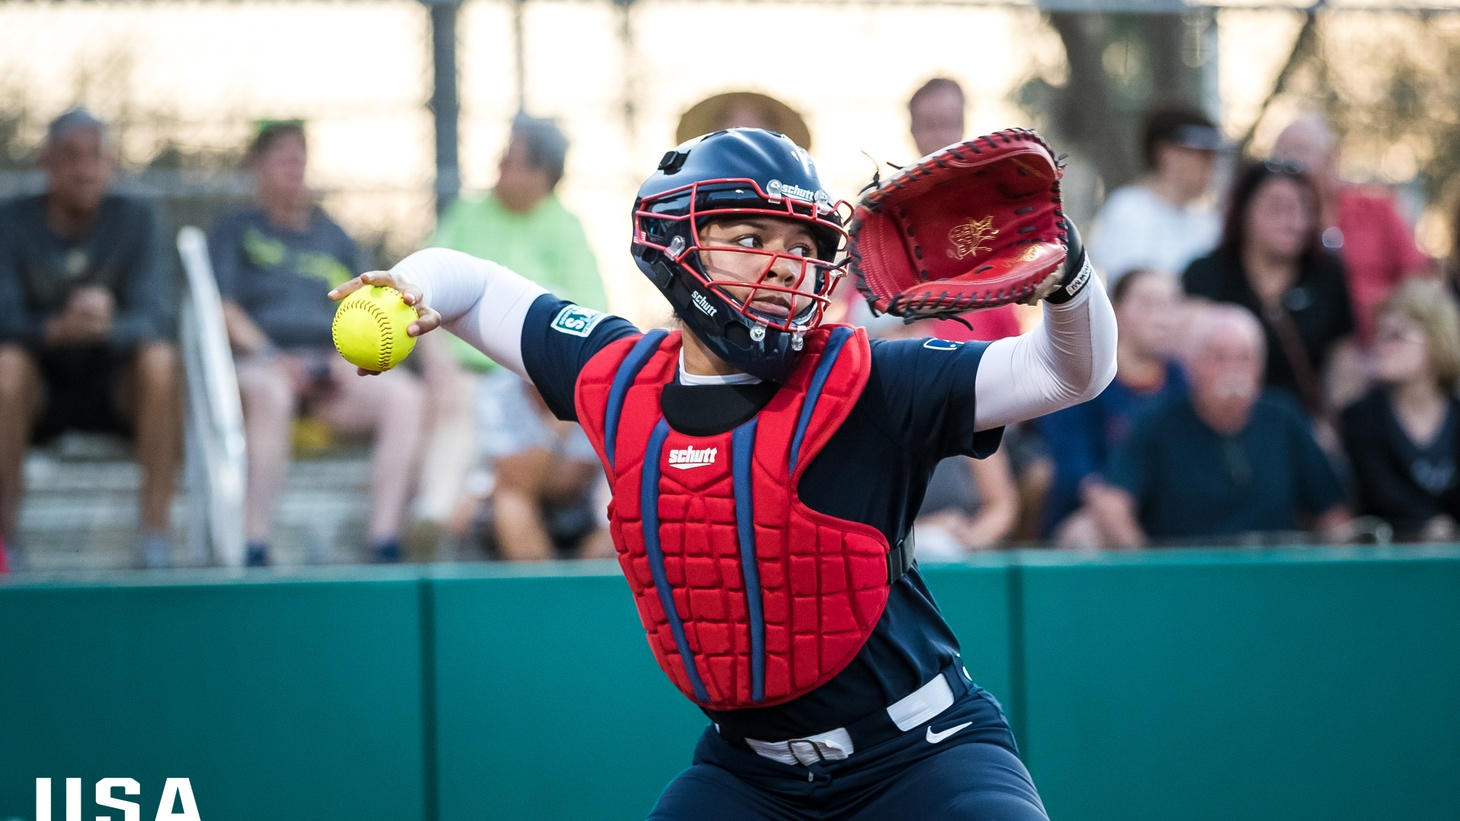 """""""Southern California is a hotbed for amazing softball athletes,"""" says Dejah Mulipola, who played for Pacific High School and the Orange County BatBusters before the University of Arizona and Team USA."""